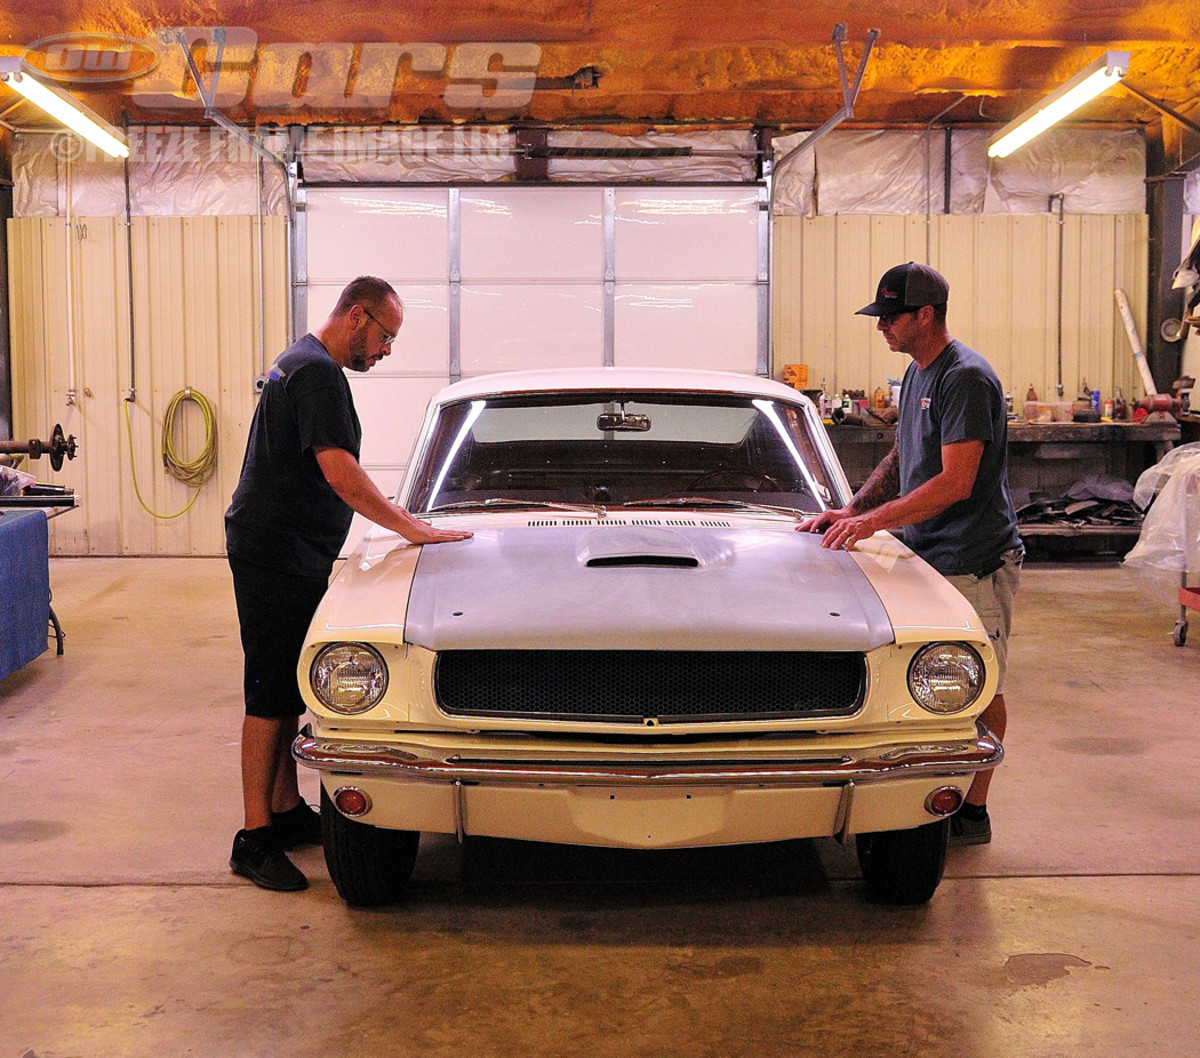 Jason Billups (left) and Skeeter White pre-fit the one-of-a-kind fiberglass Shelby 003 hood.